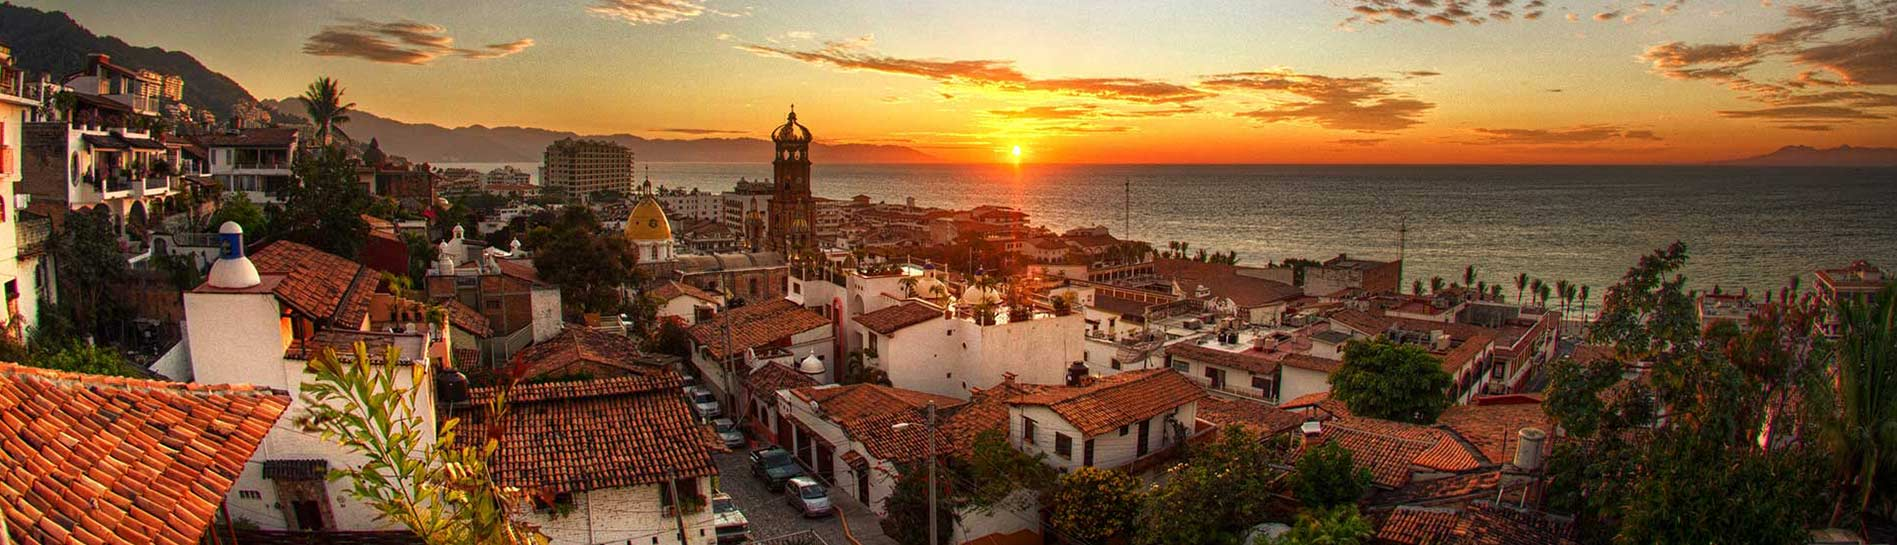 Sunset casts a red glow over Banderas Bay, Puerto Vallarta